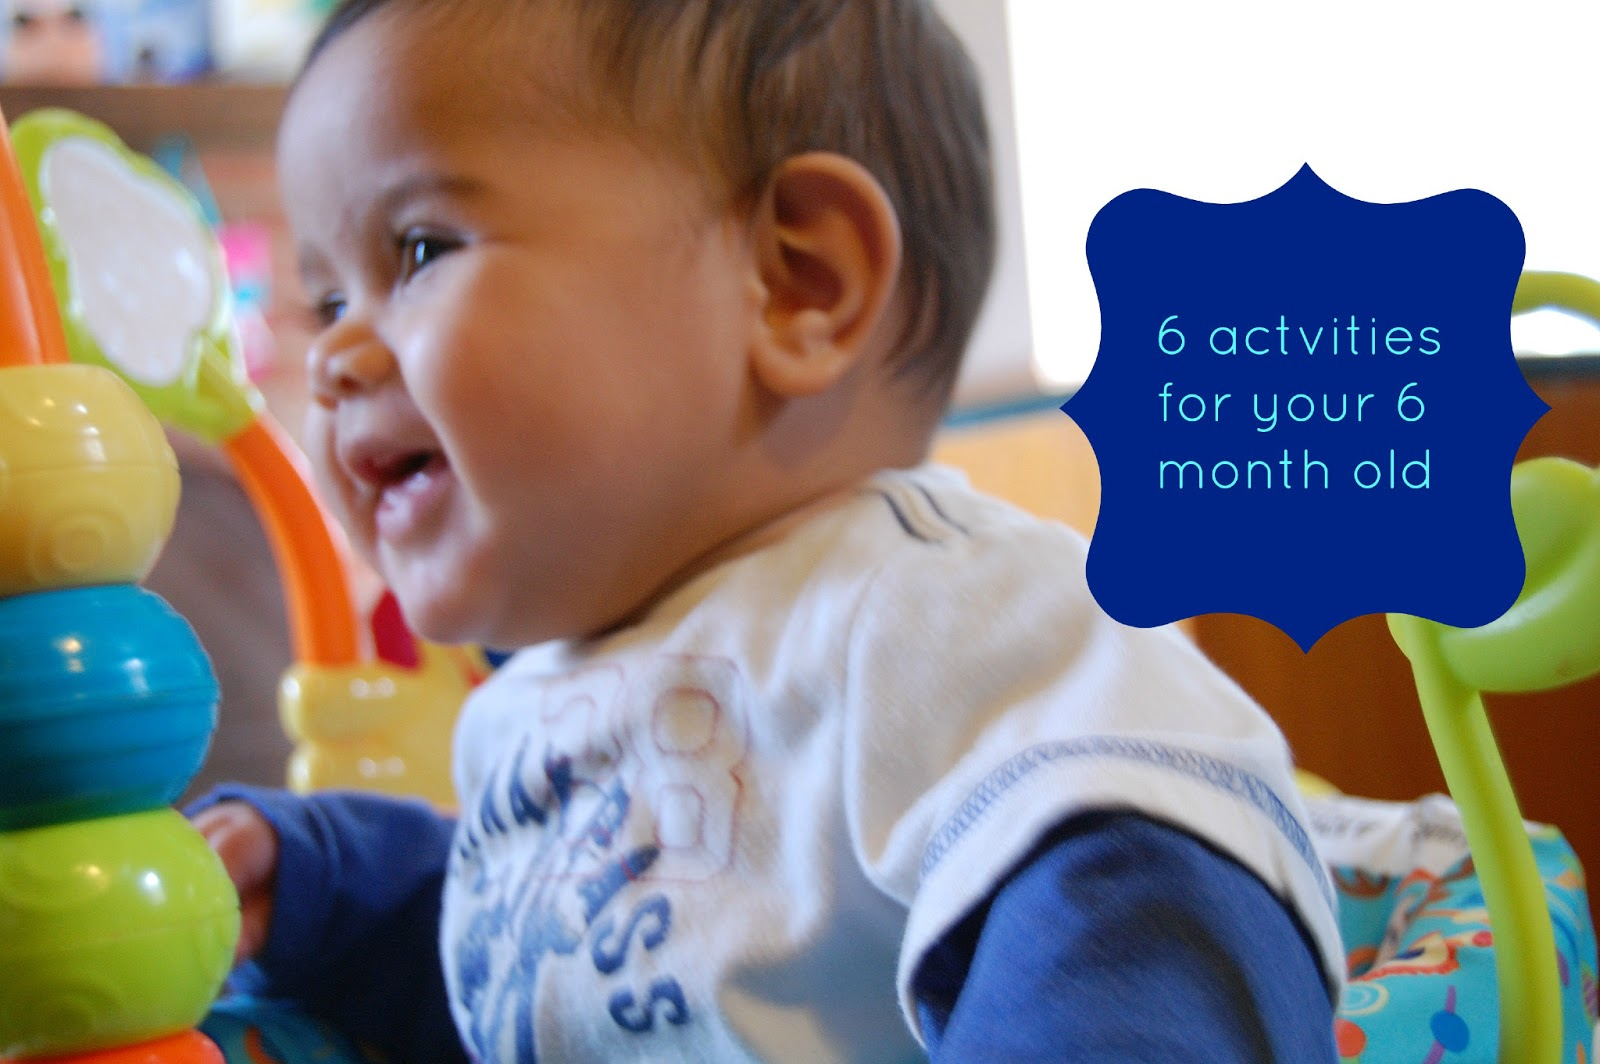 Encouragement For Moms 6 Activities For Your 6 Month Old